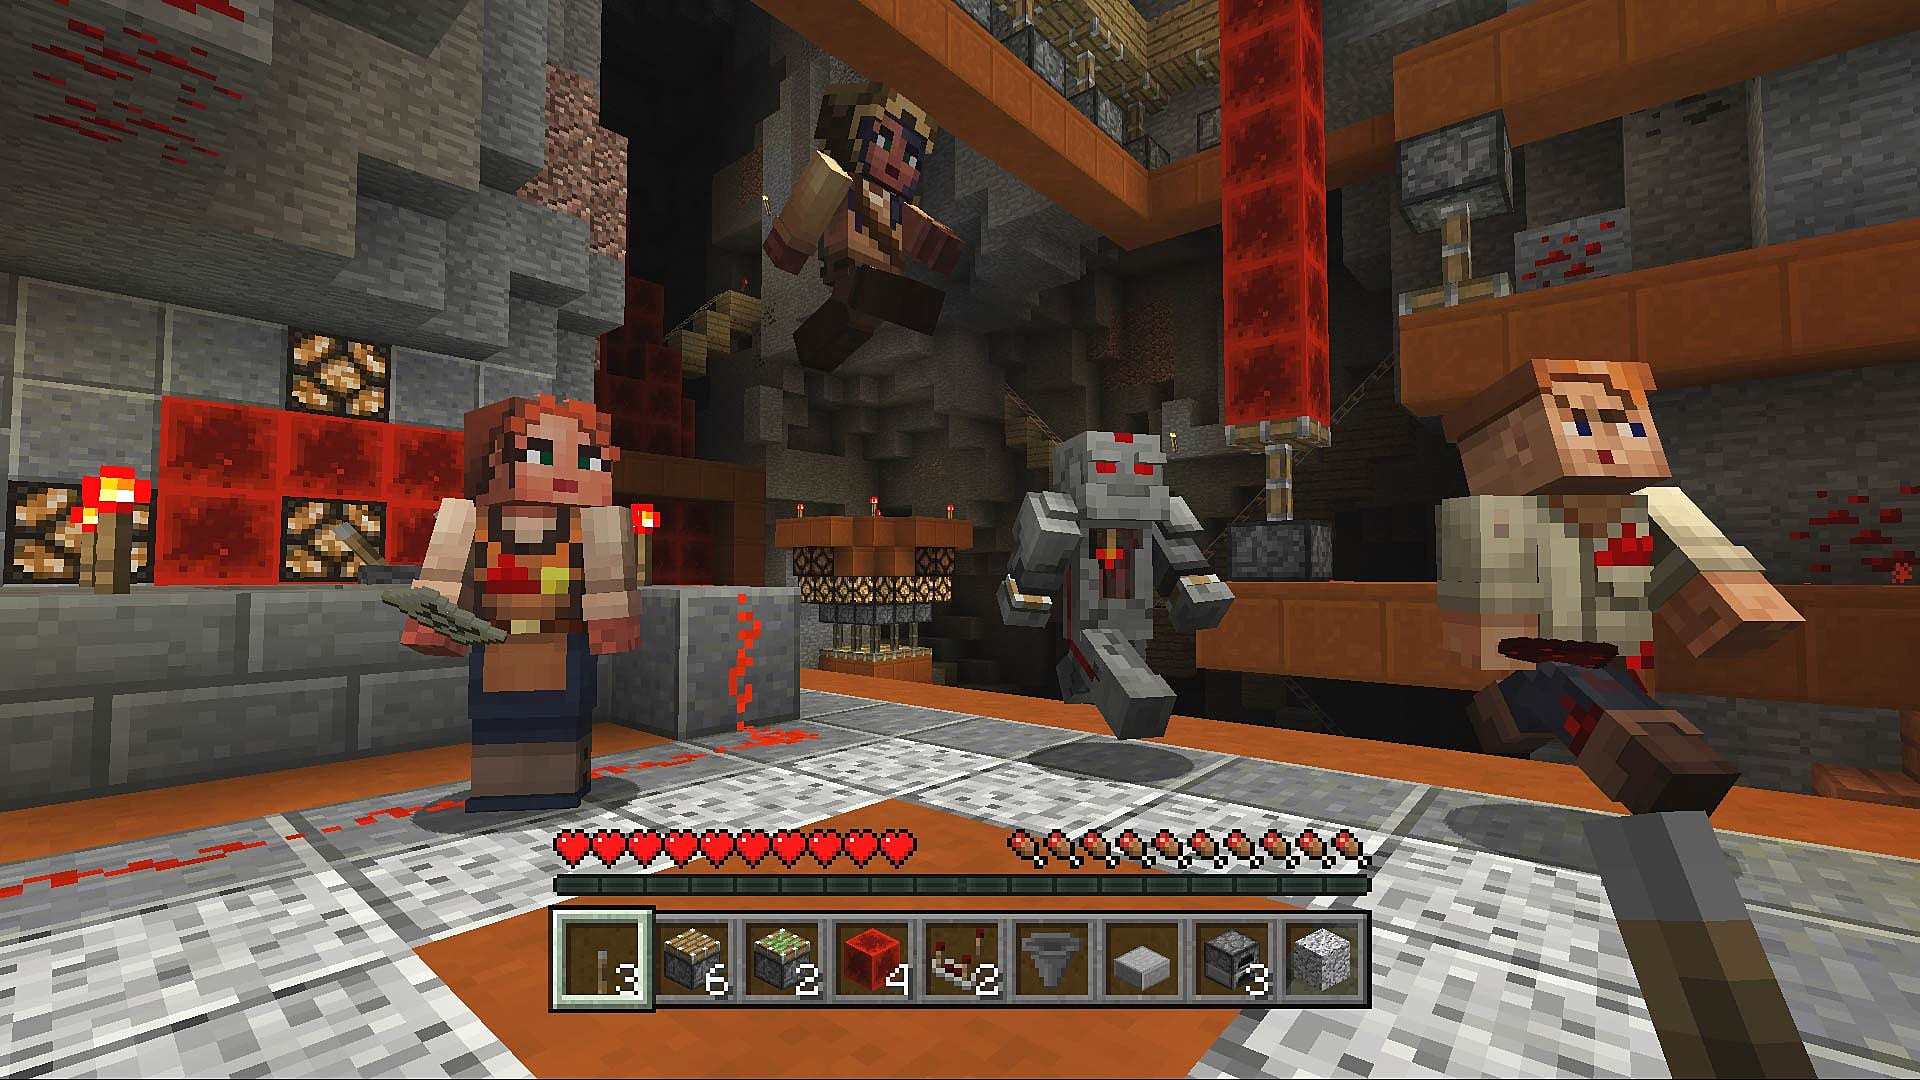 What You Need To Know About Minecraft New Nintendo 3ds Edition Two Way Switch Redstone The Specialists In Title Tells Exactly This Pack Is All Among These Skins Are Artisan Specialist Composer Scholar